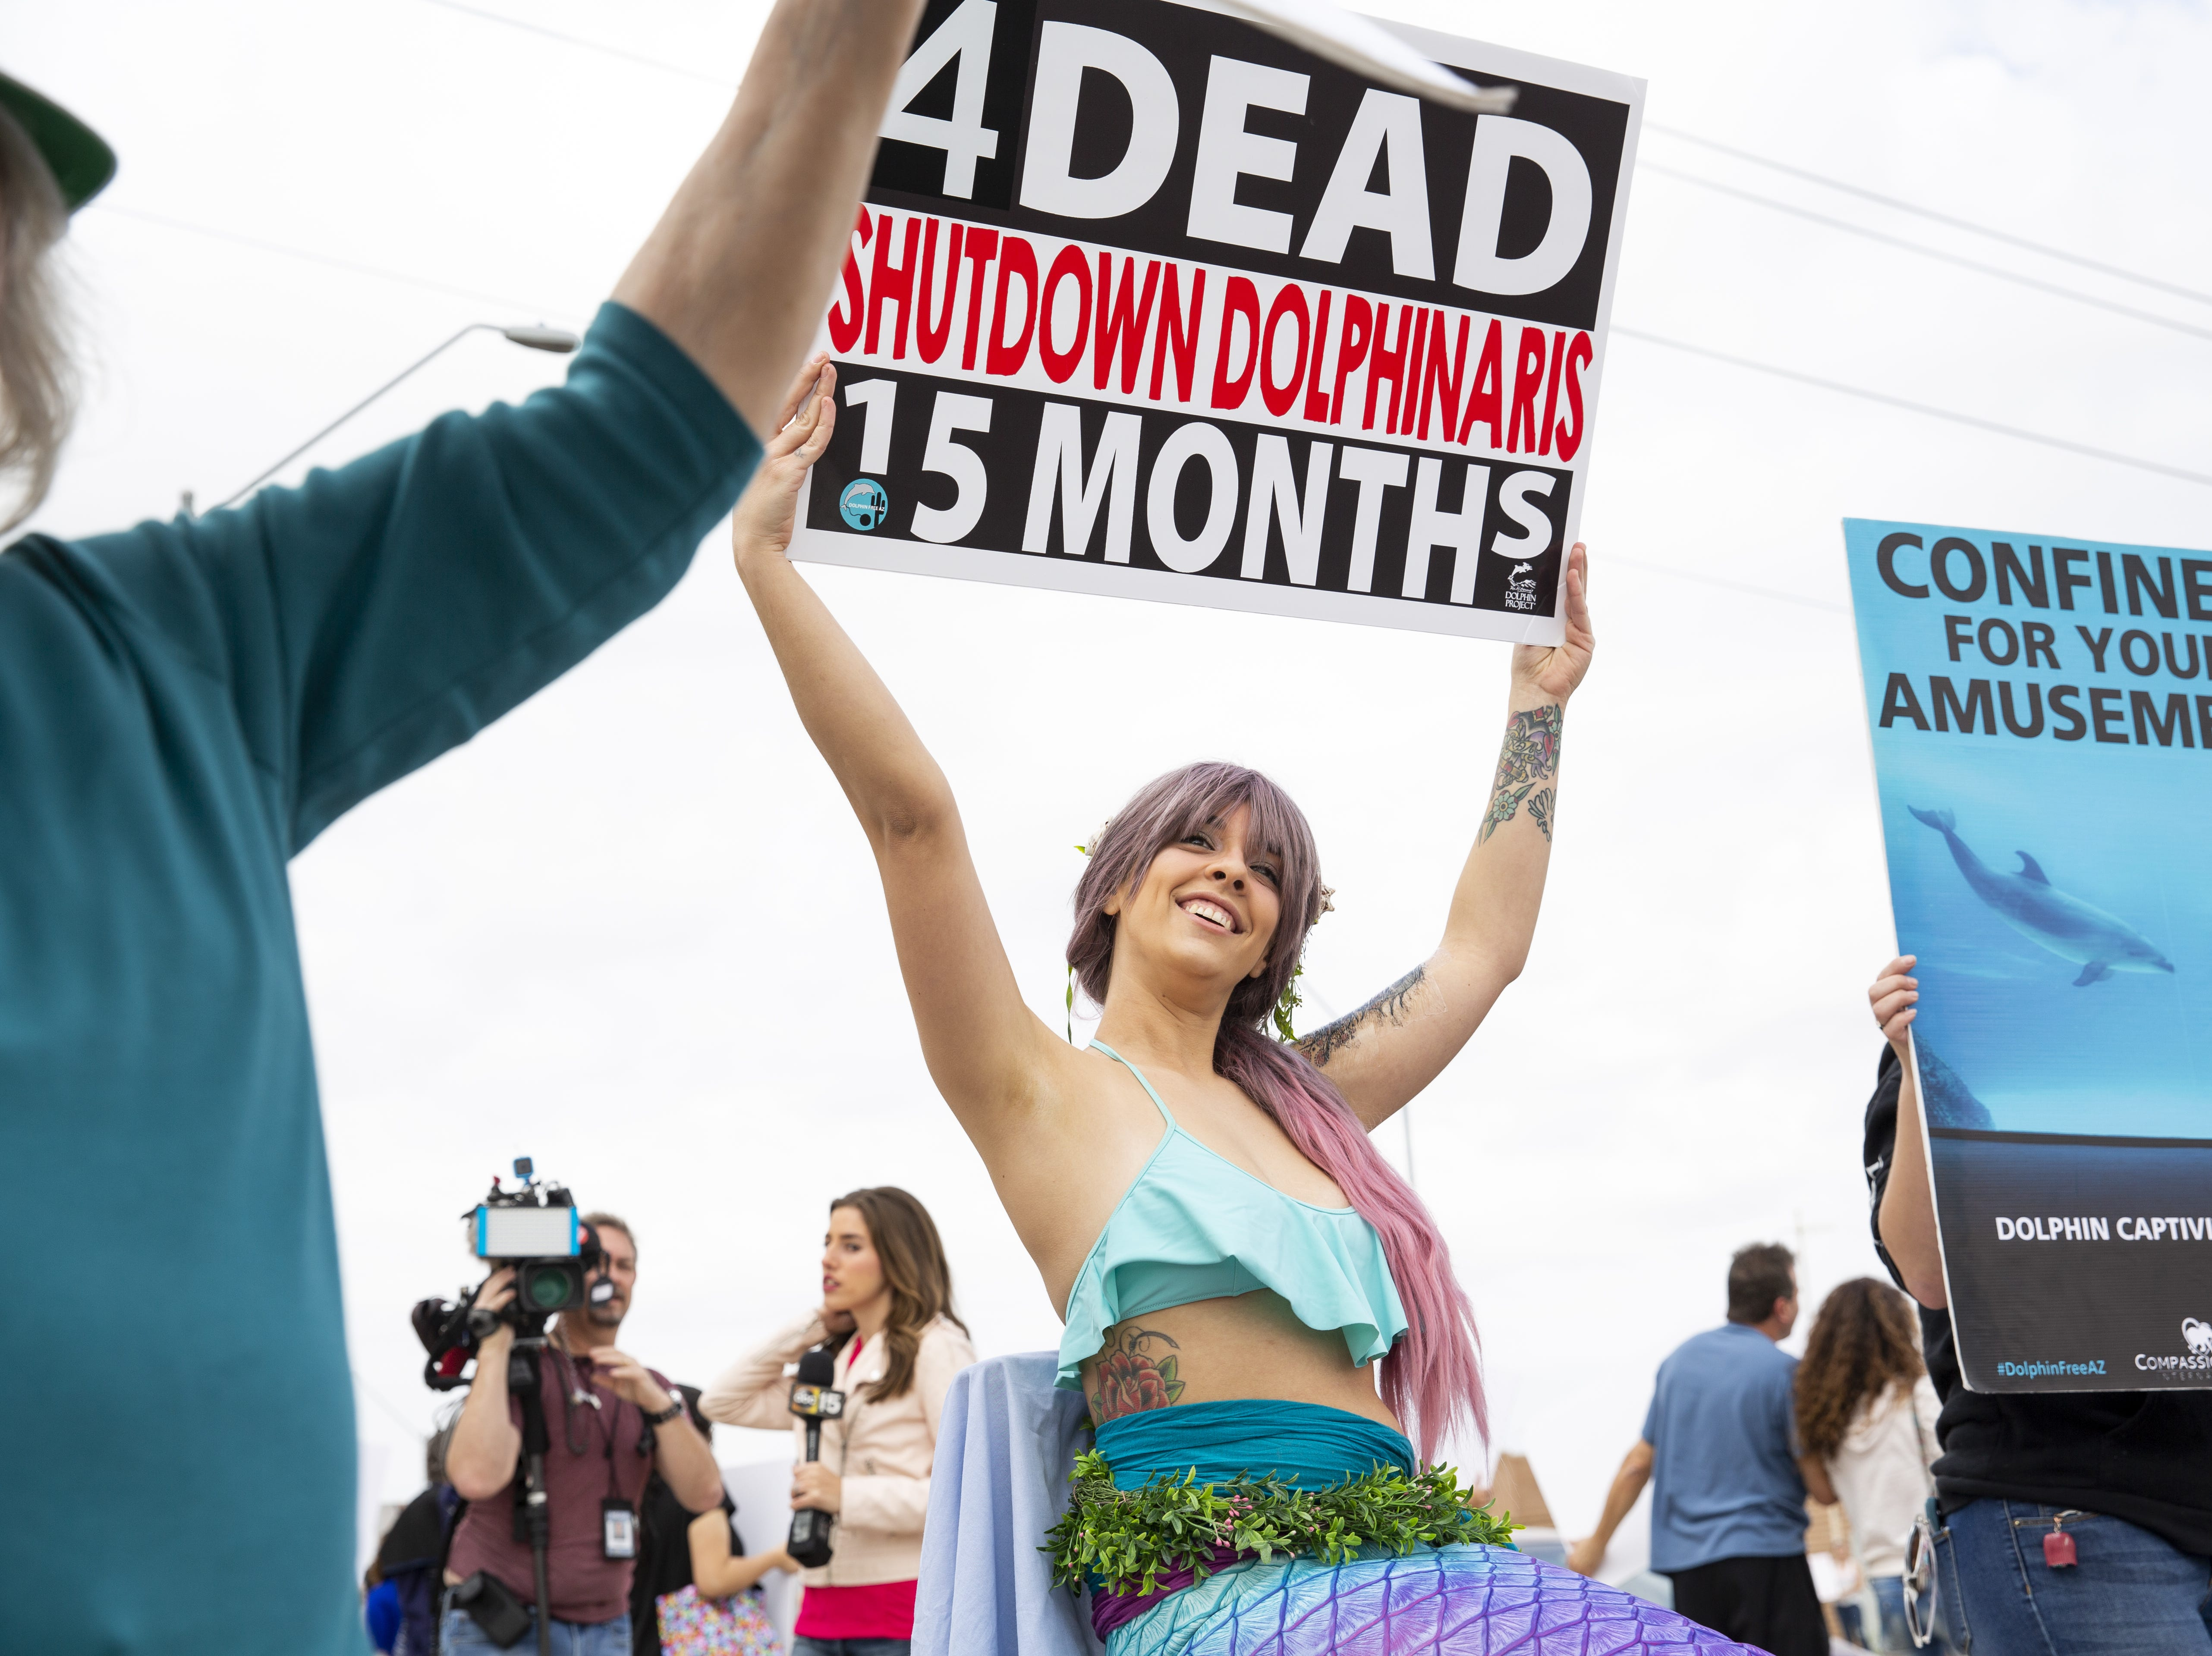 Brami Klin, who goes by @MojaveTheMer on social media, holds a sign in protest of Dolphinaris at the intersection of E. Via de Ventura and N. Pima Road in Scottsdale on Feb. 2, 2019.